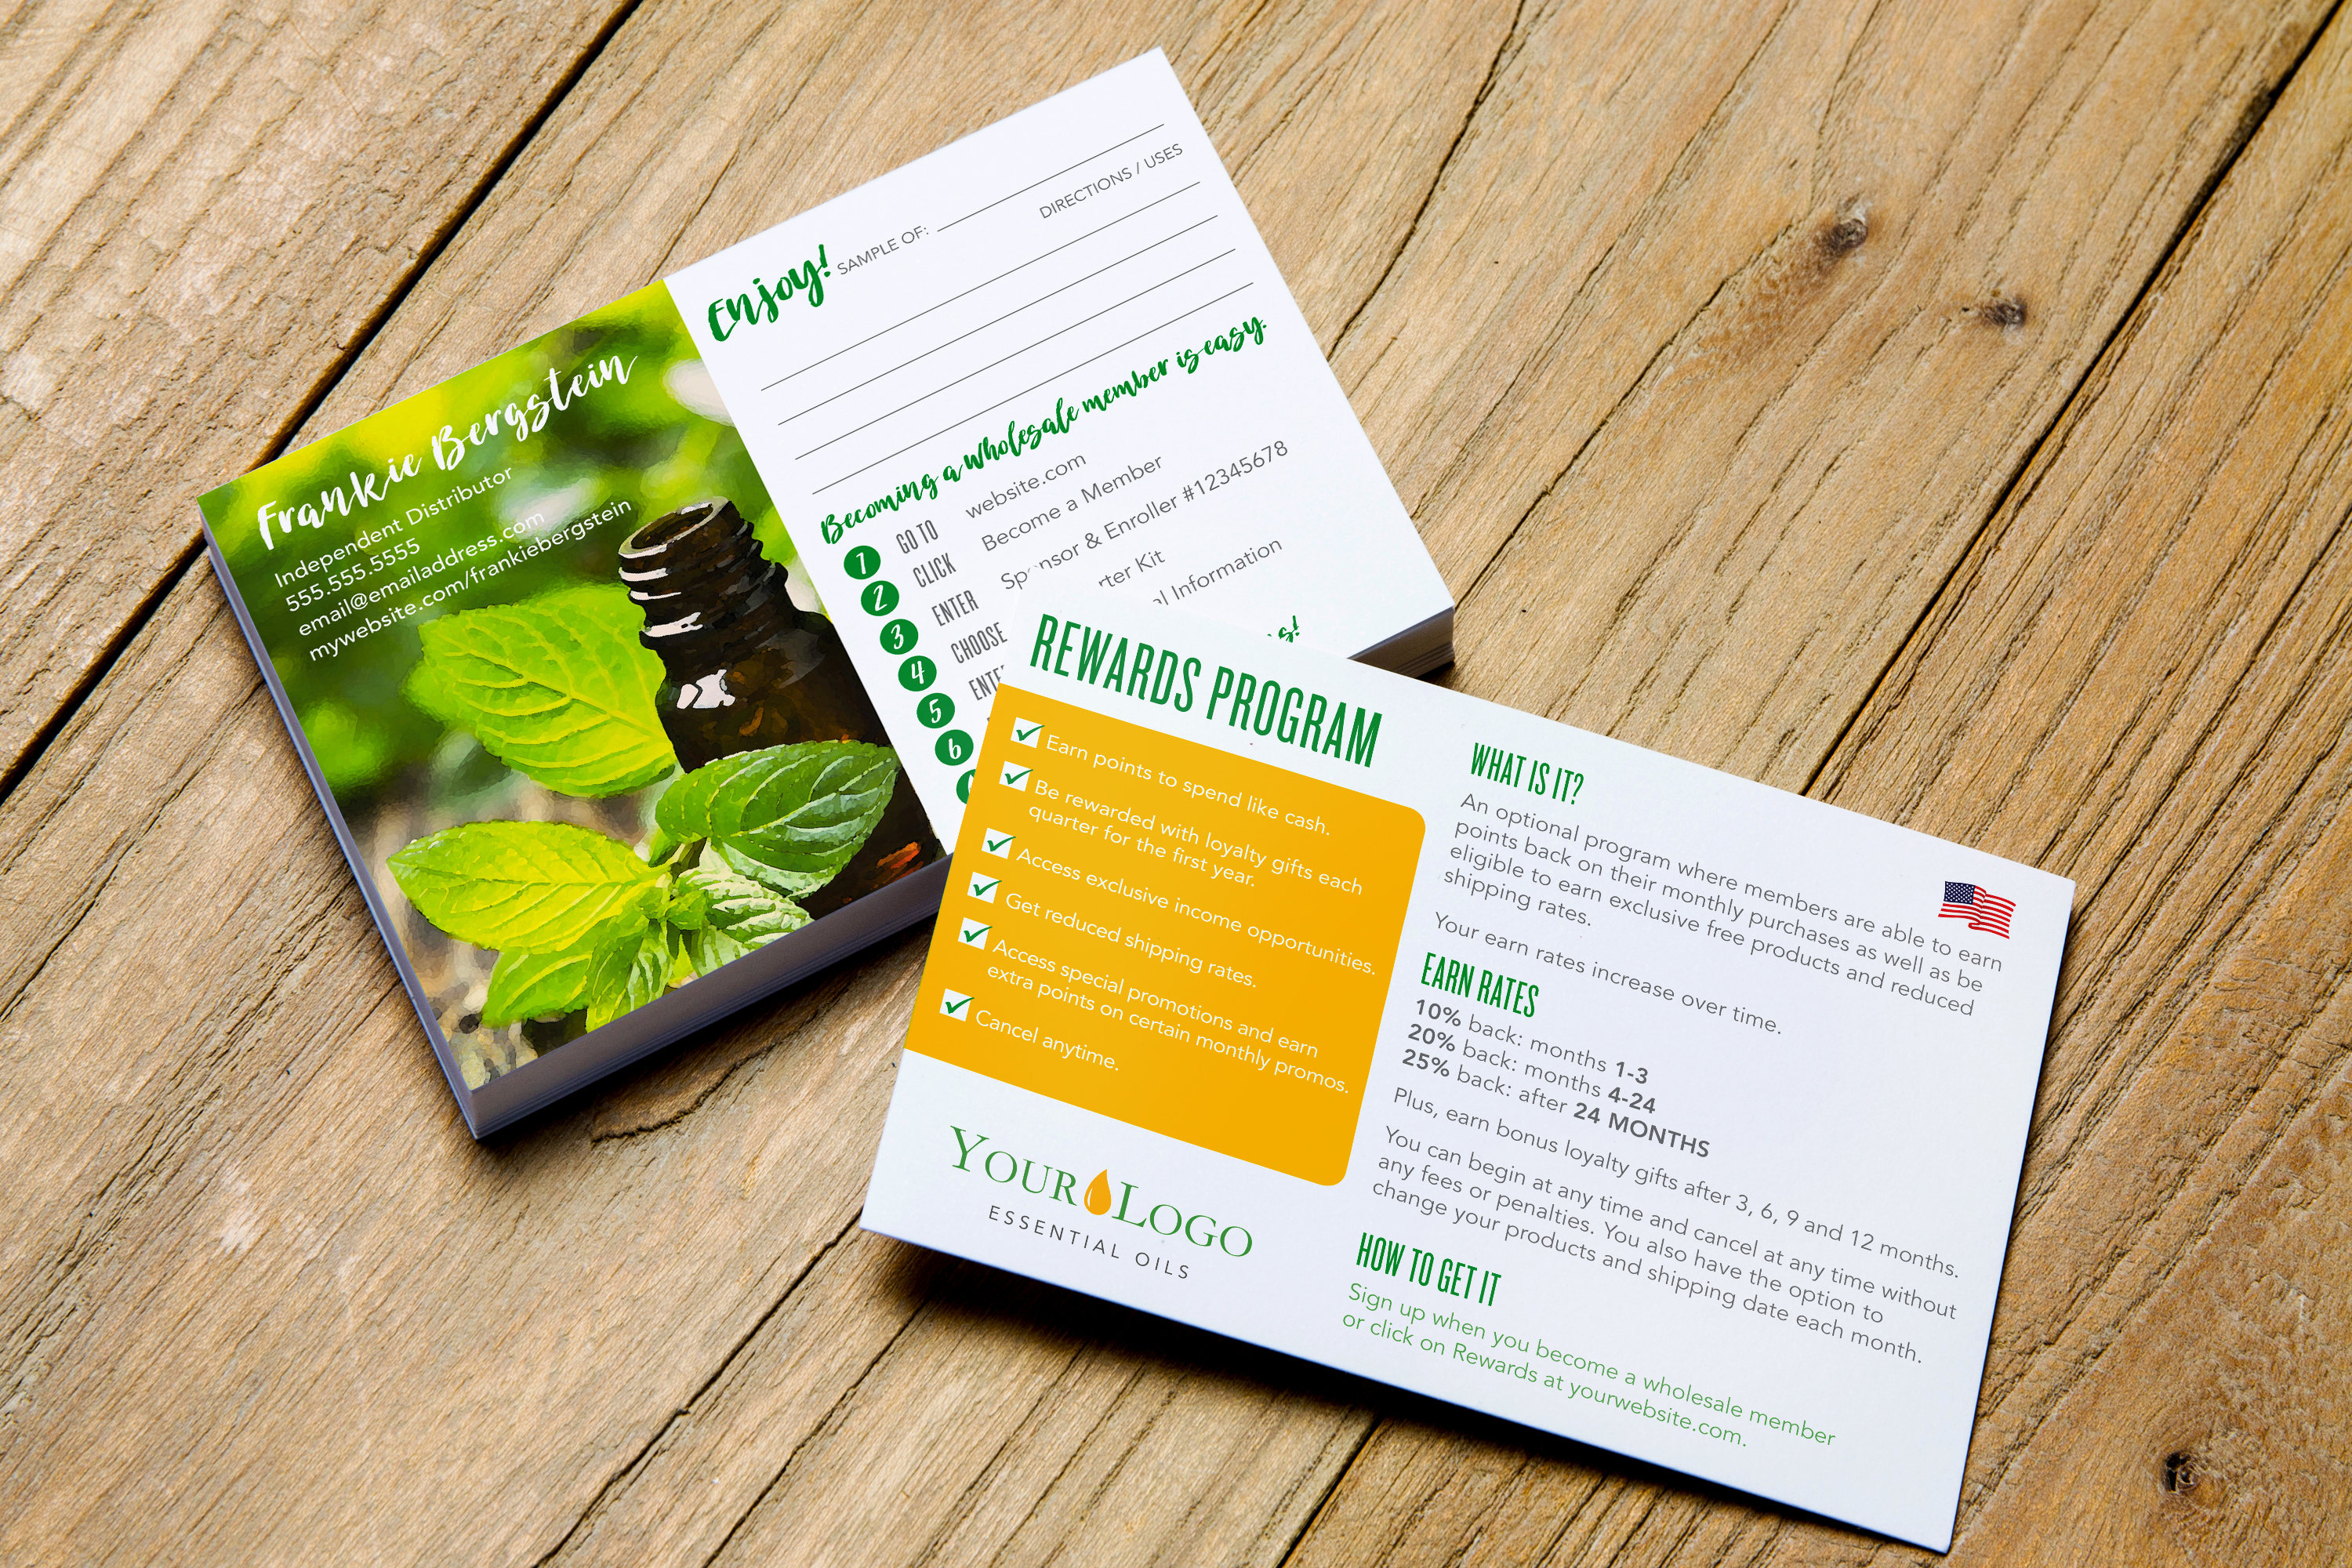 Essential Oil Sample Card W/ Sign-Up Instructions & Reward Info >  Peppermint > Printable > Personalized > Young Living Distributor - Free Printable Doterra Sample Cards